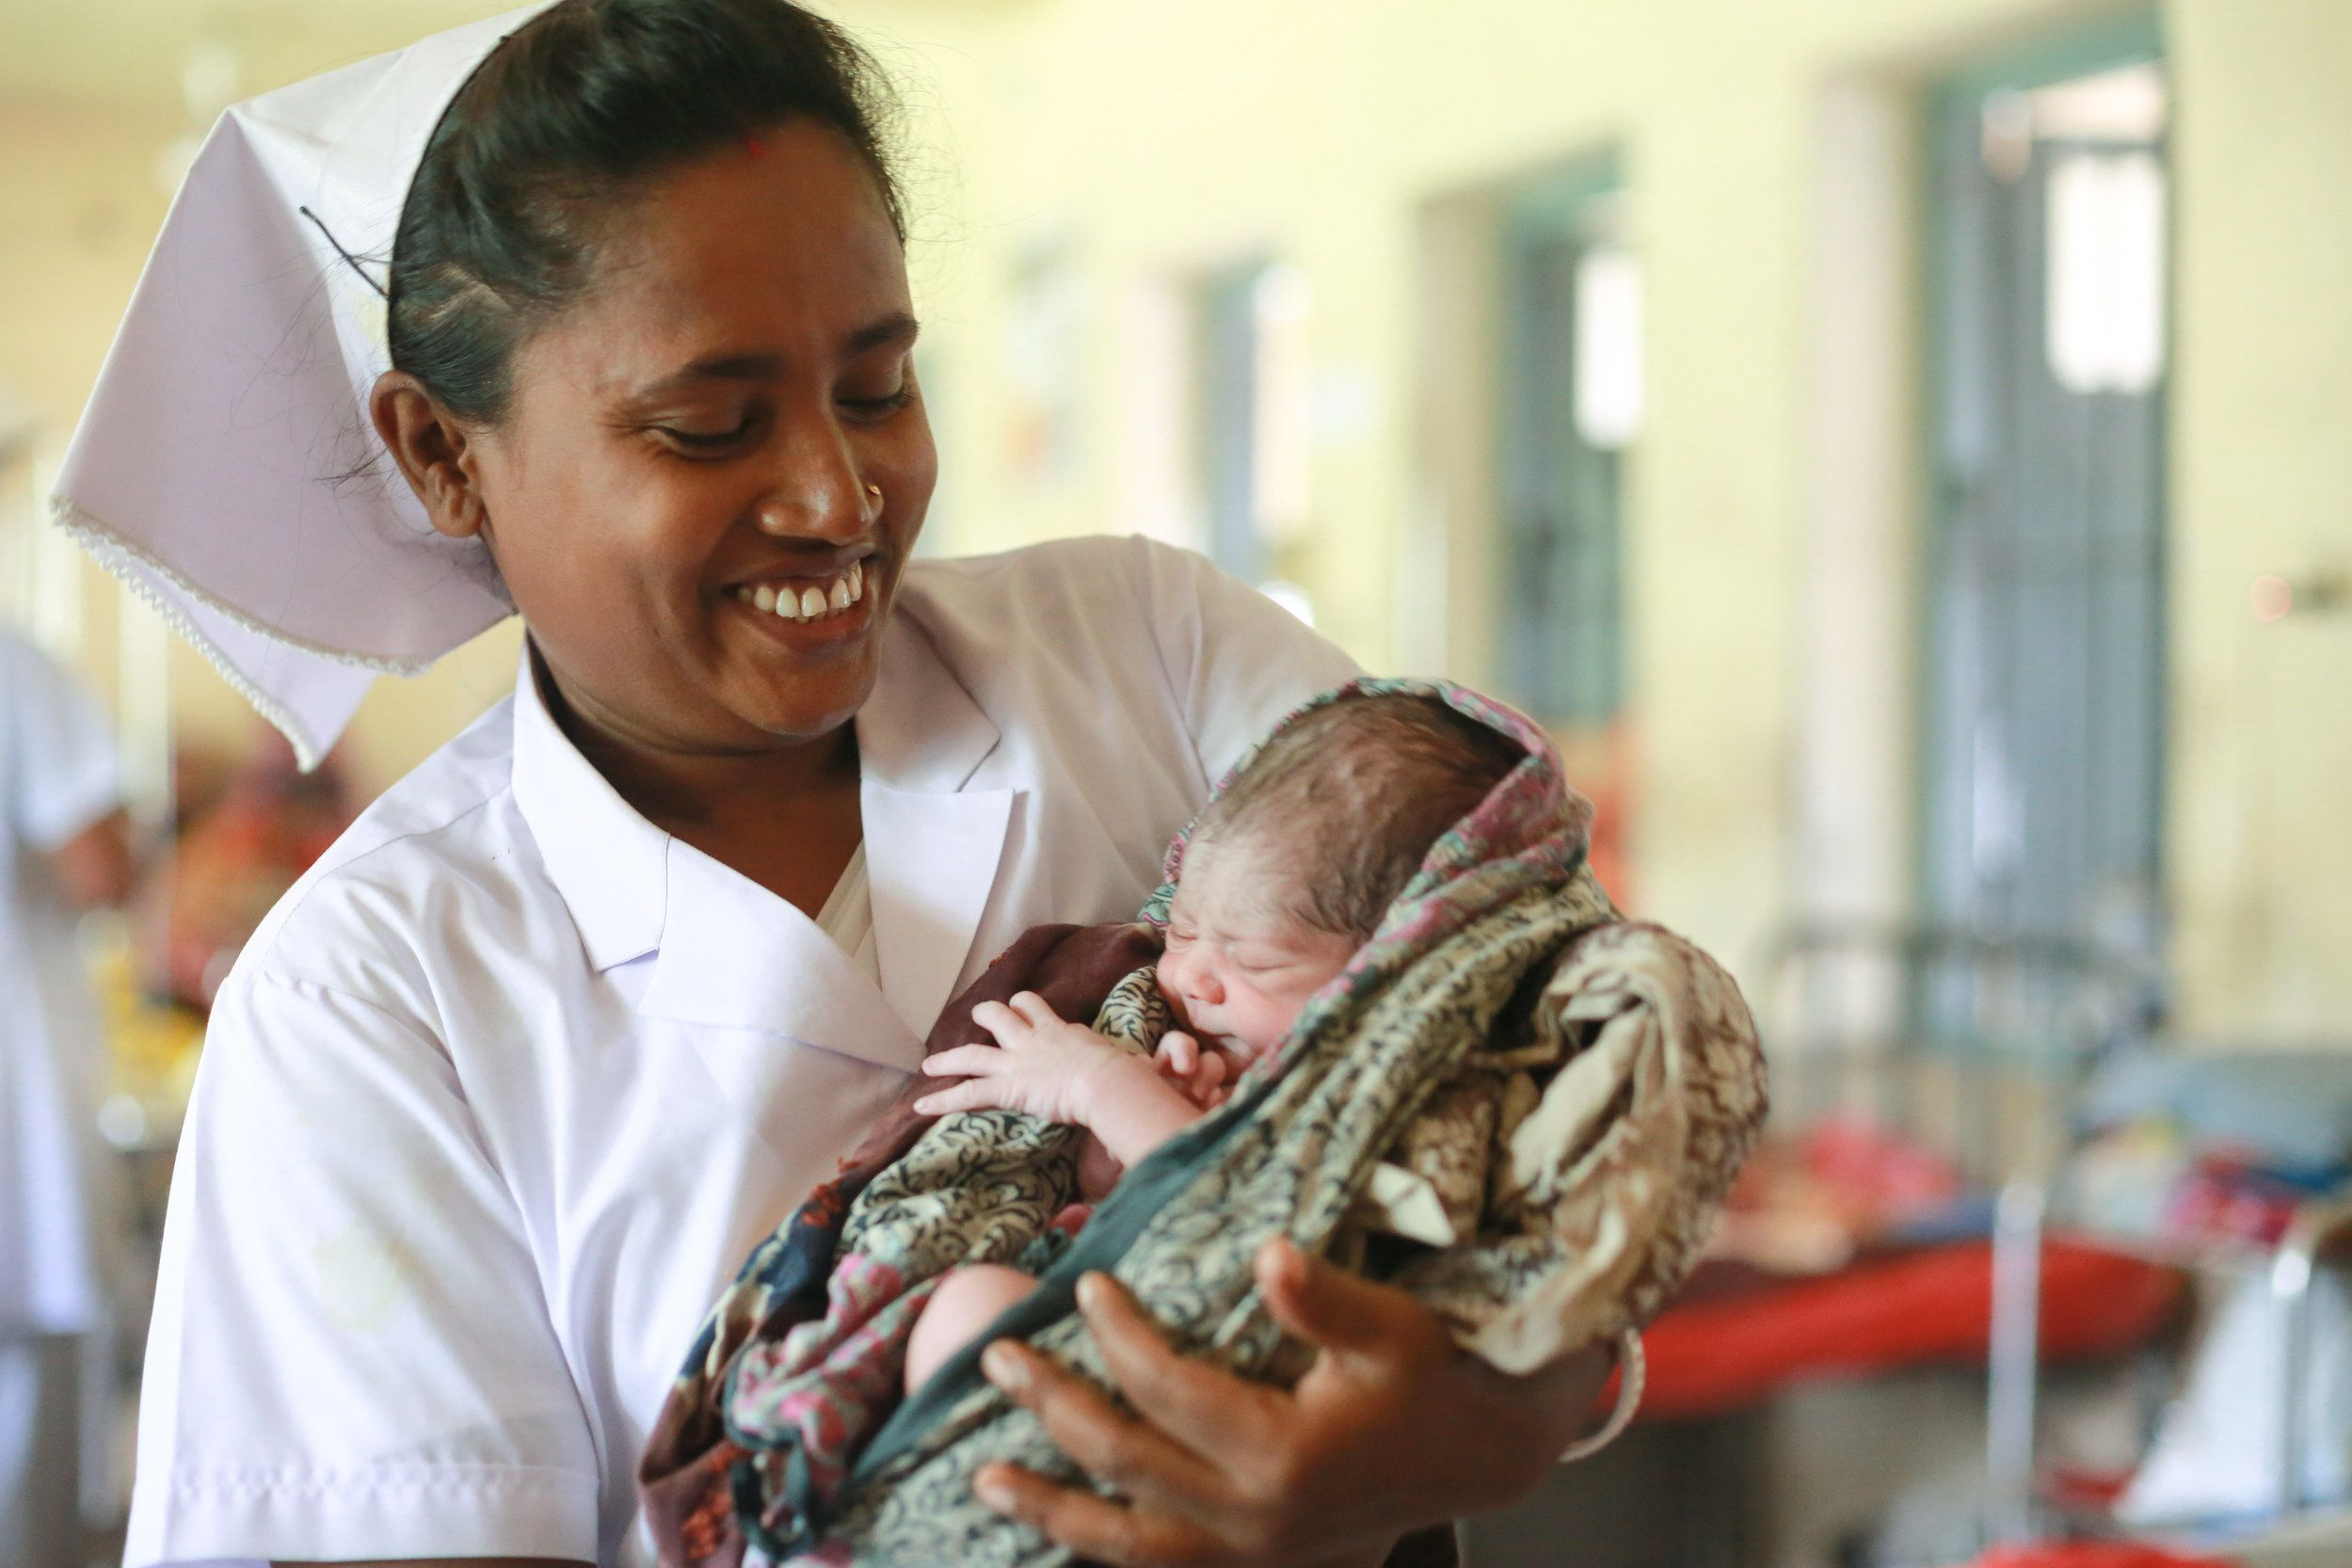 A midwife inBangladesh holds a 1-day-old